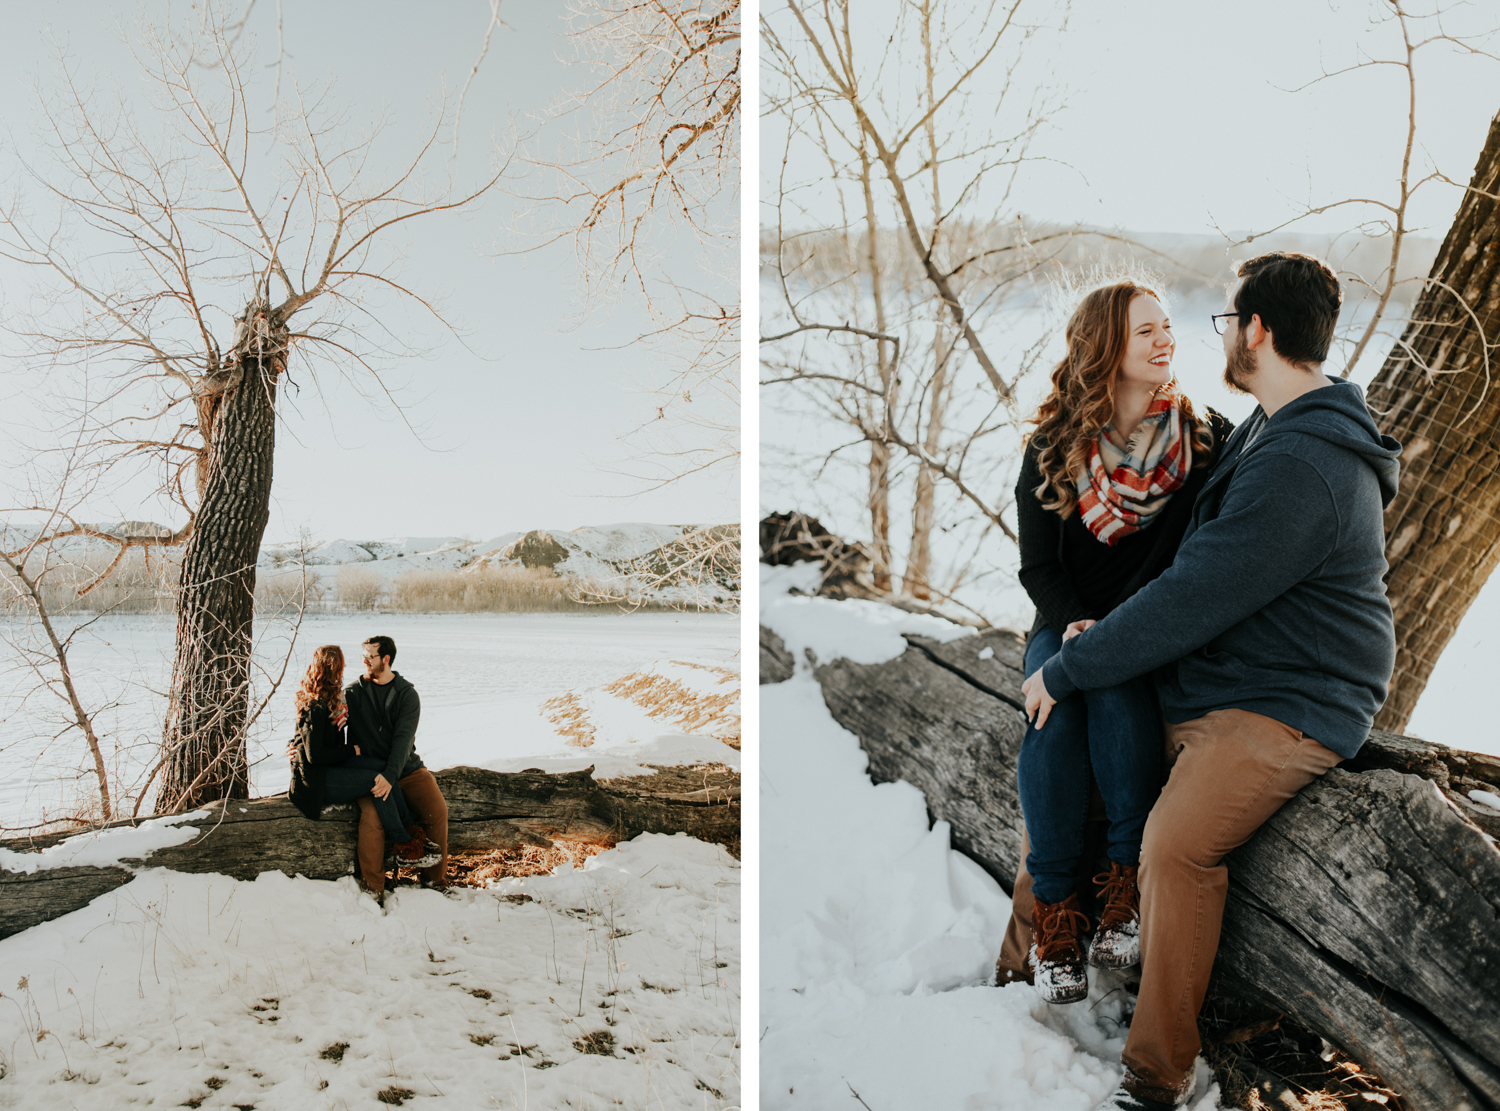 lethbridge-photography-love-and-be-loved-photographer-dan-tynnea-engagement-picture-image-photo-2.jpg